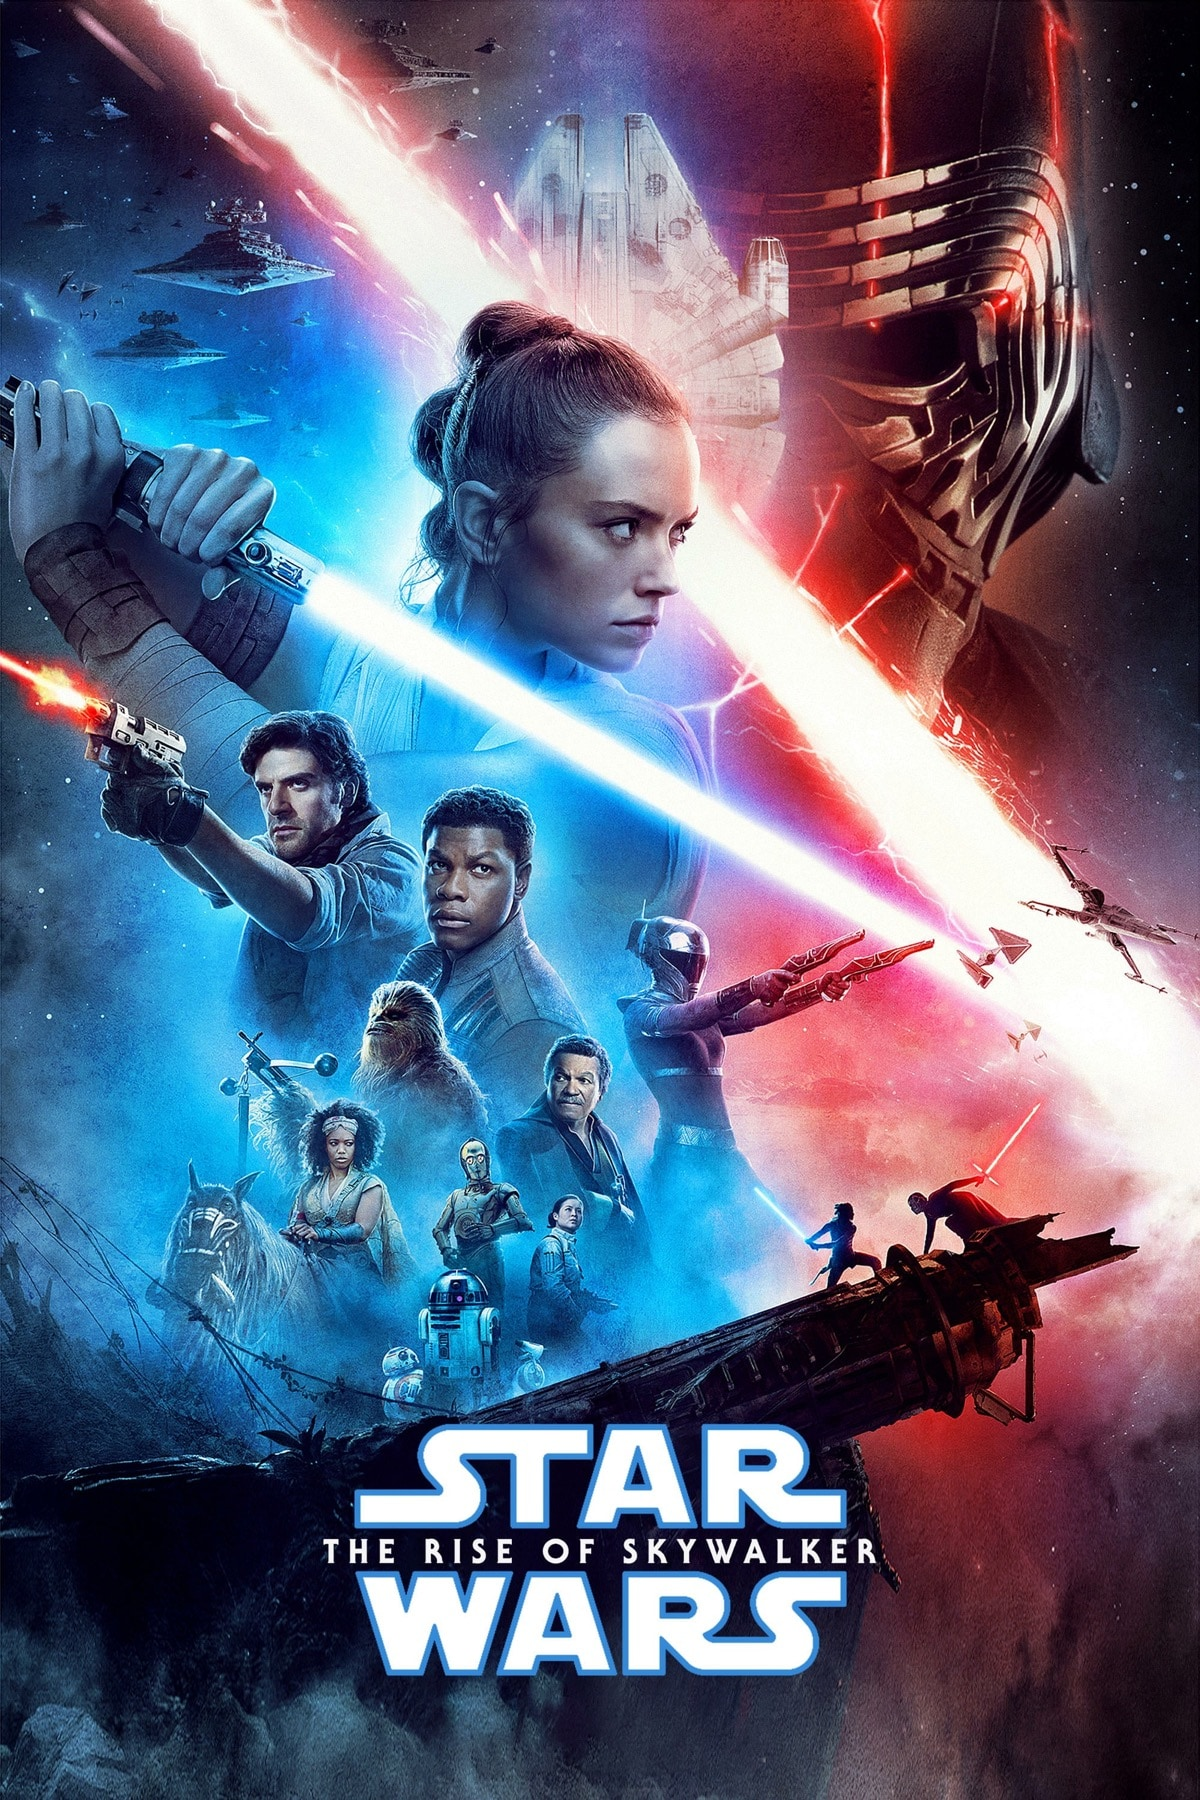 Star Wars The Rise Of Skywalker Cast Review Tickets Trailer Poster Budget India Release Date Leaks And More Ndtv Gadgets 360